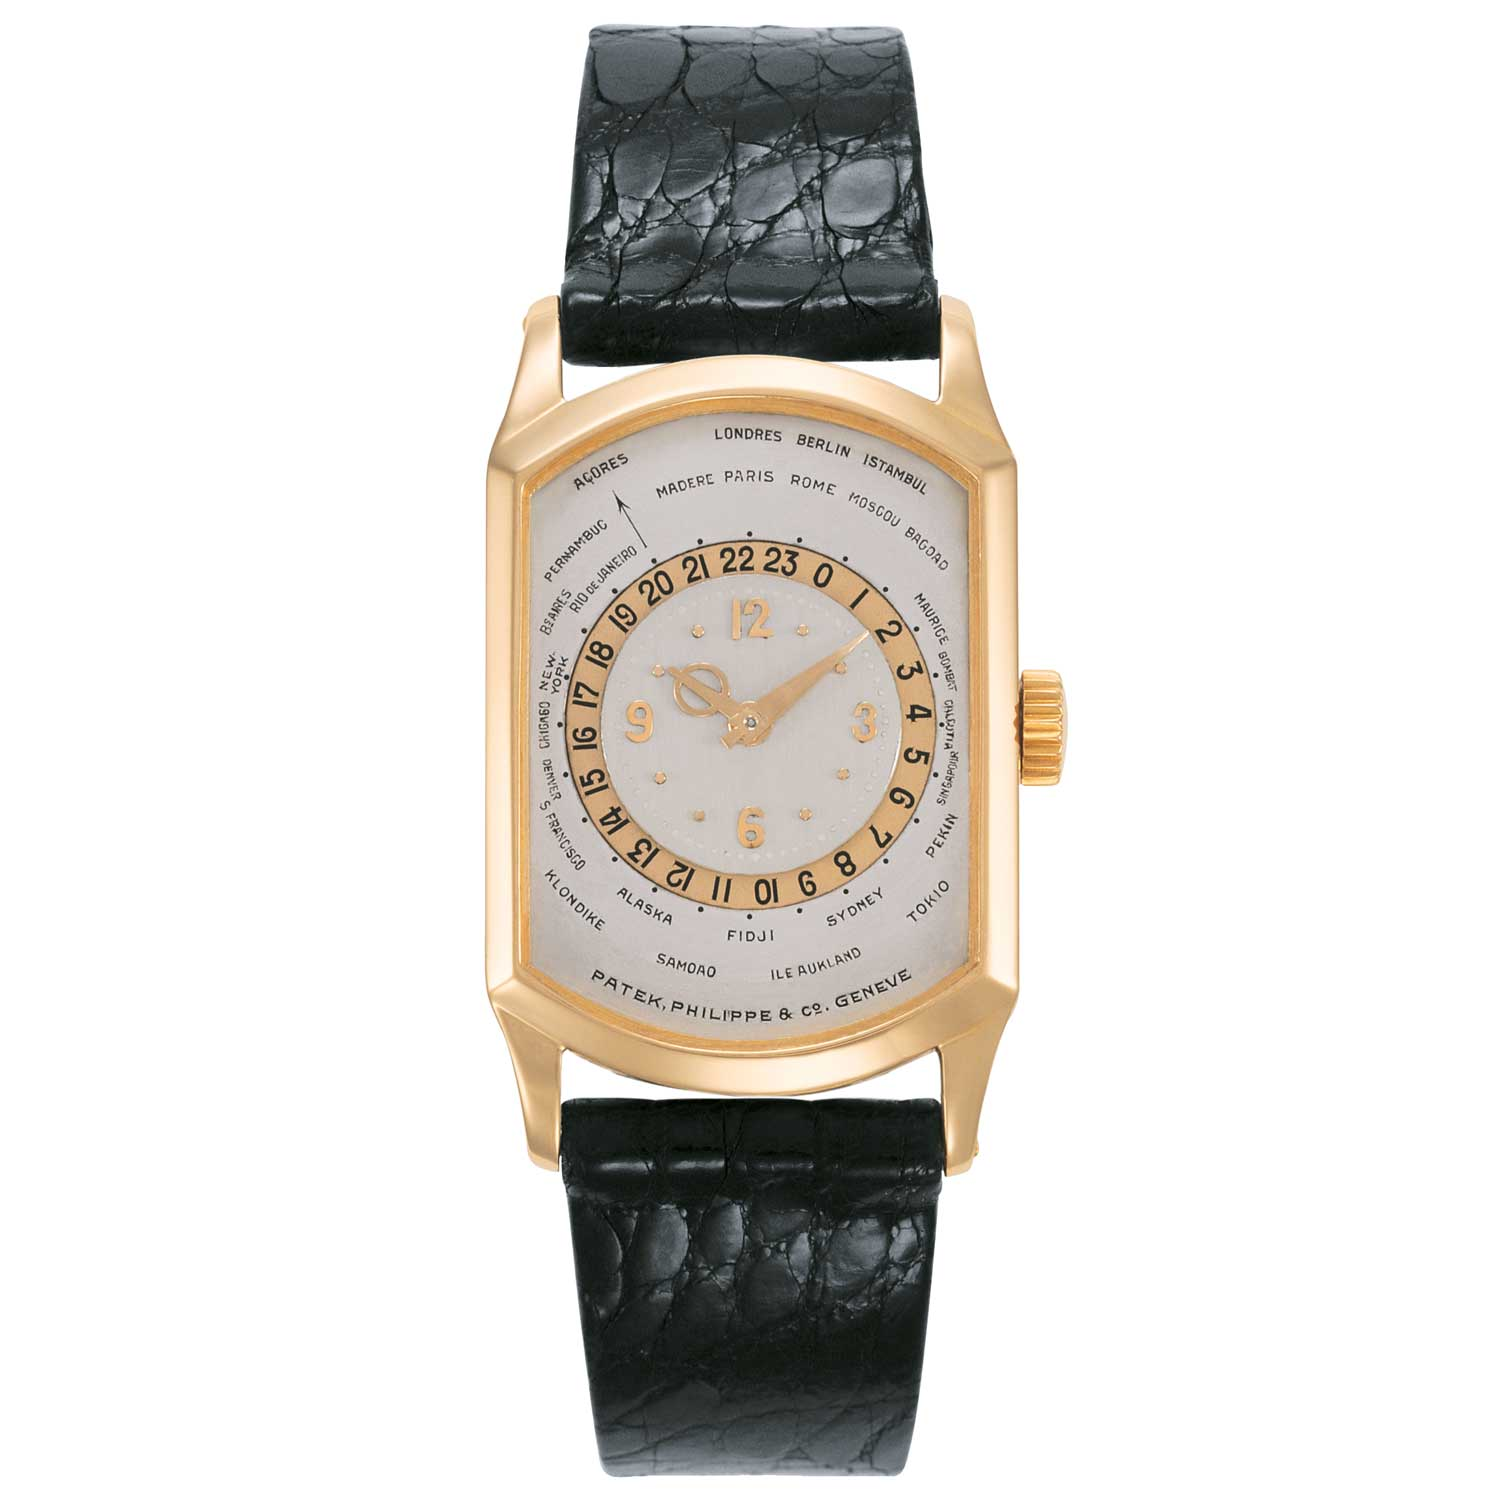 Made in 1937,the Patek Philippe ref. 515HU features a surprising and super elegant rose gold shaped rectangular case.